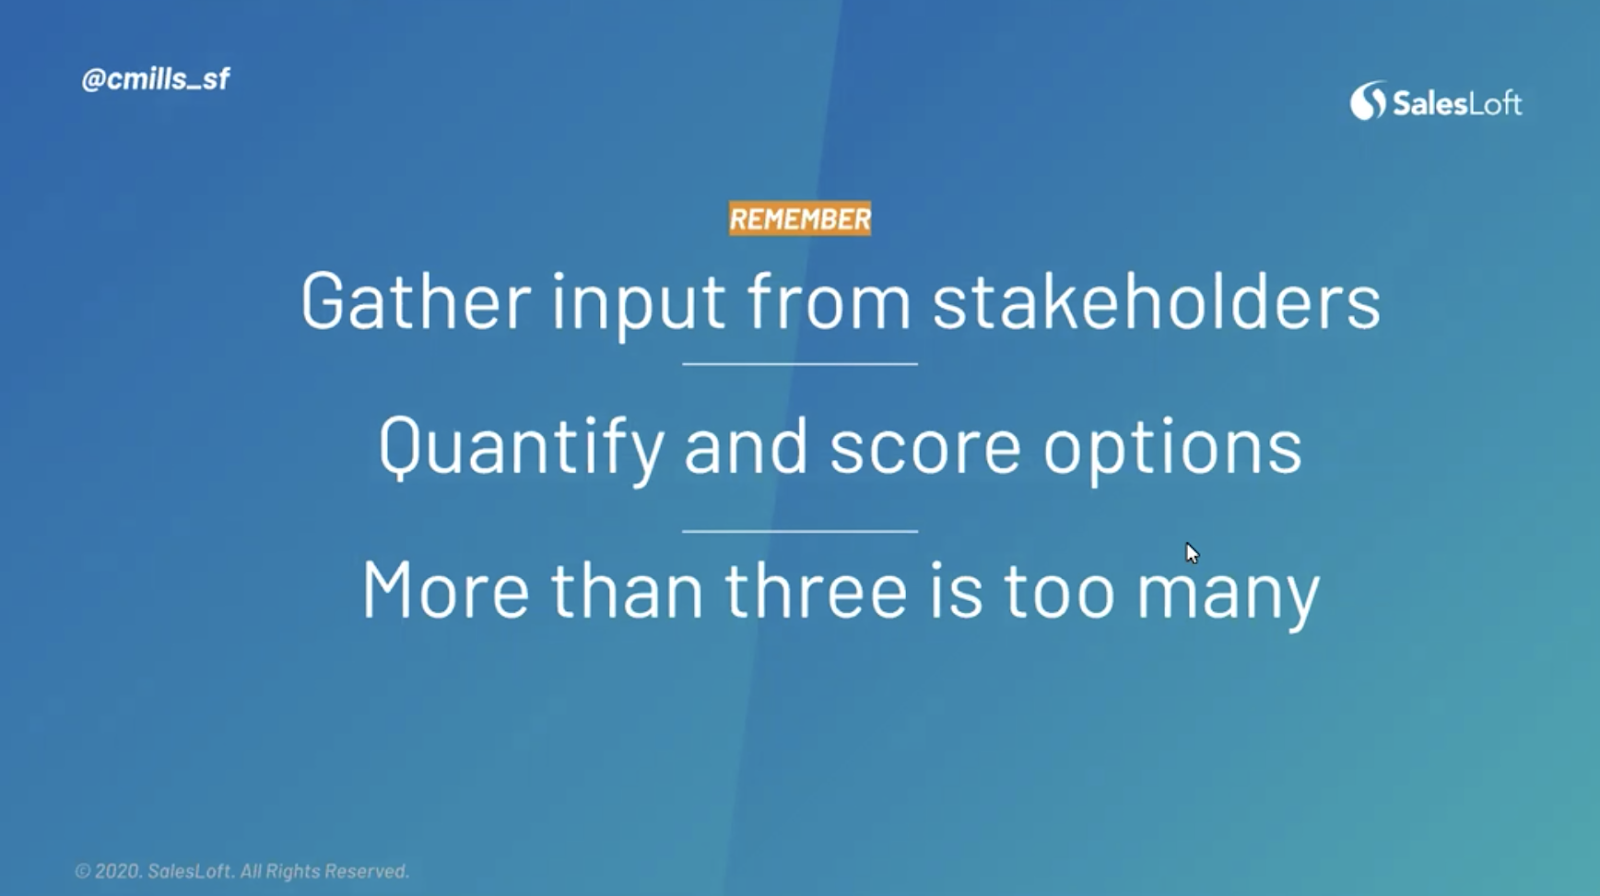 Gather input from stakeholders, quantify and score options, and remember - more than three is too many.